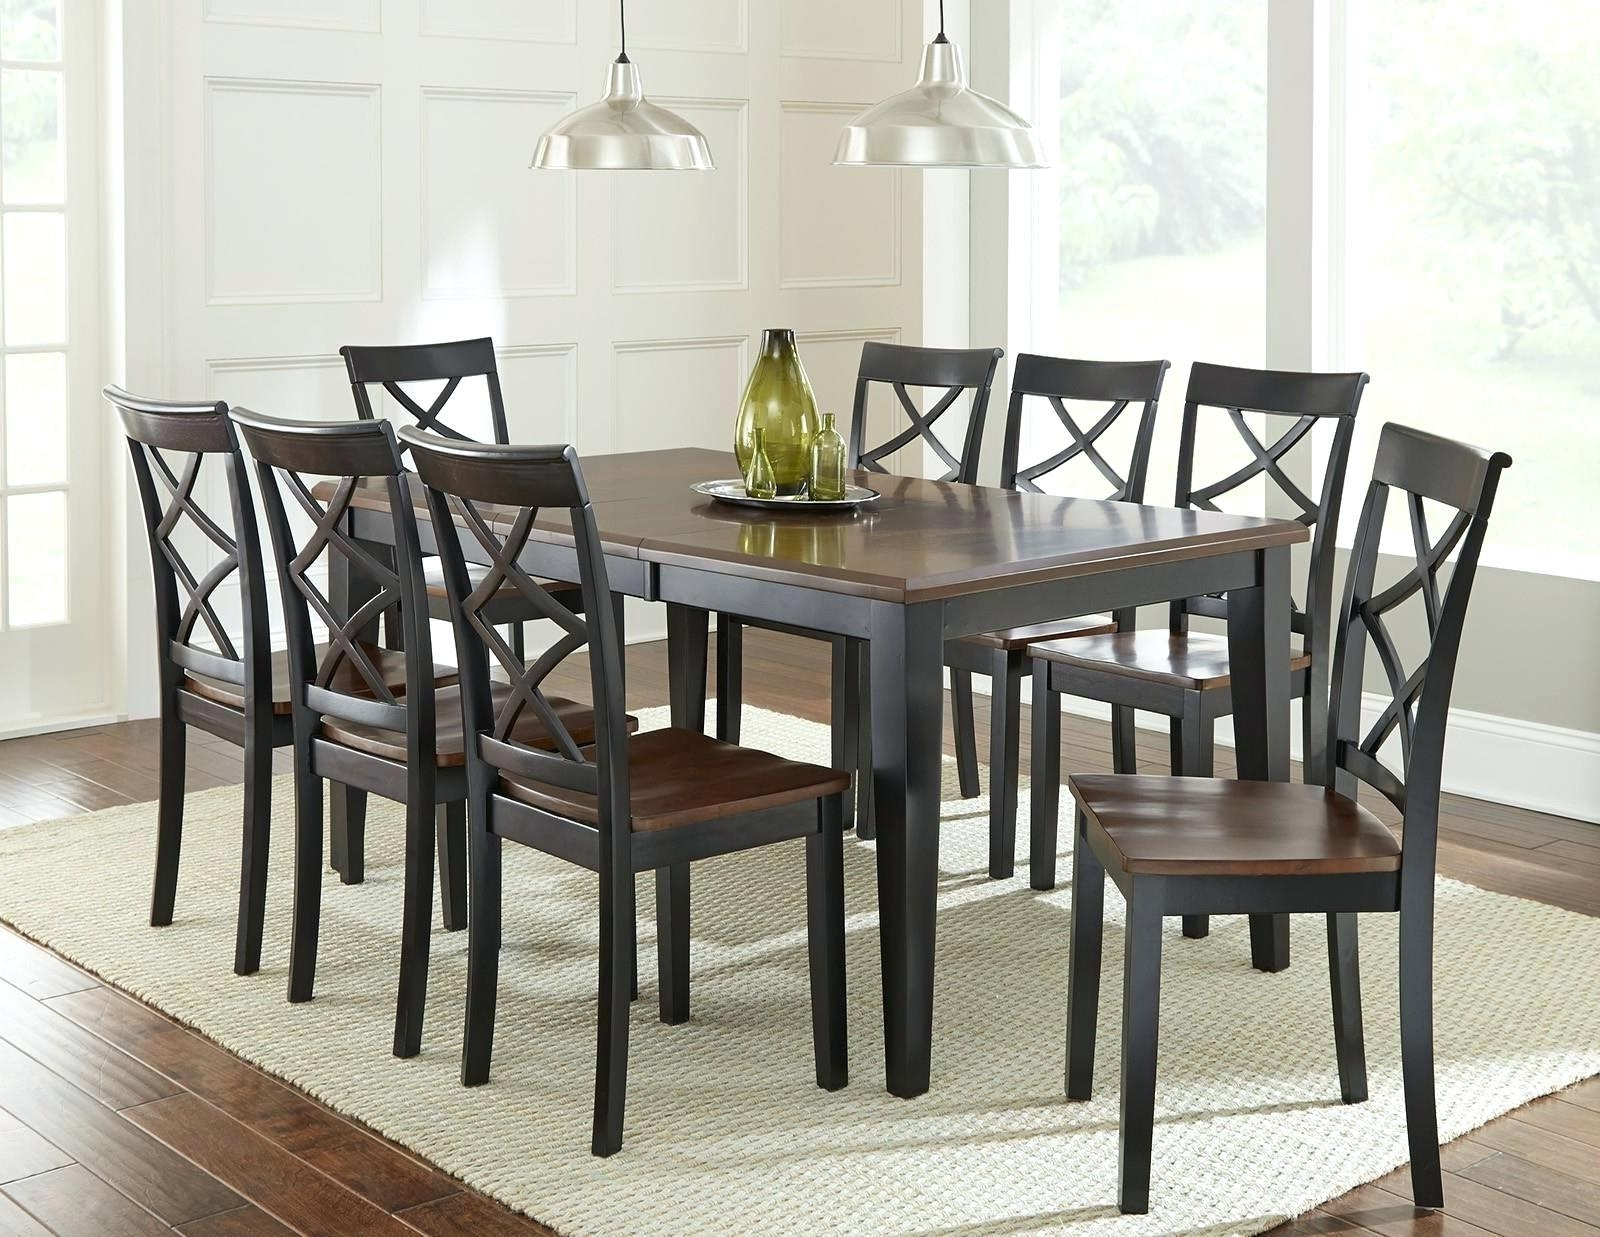 Cheery Caira Piece Extension Set Back Chairs Caira Piece Extension Intended For Most Current Chapleau Ii 9 Piece Extension Dining Tables With Side Chairs (View 9 of 25)